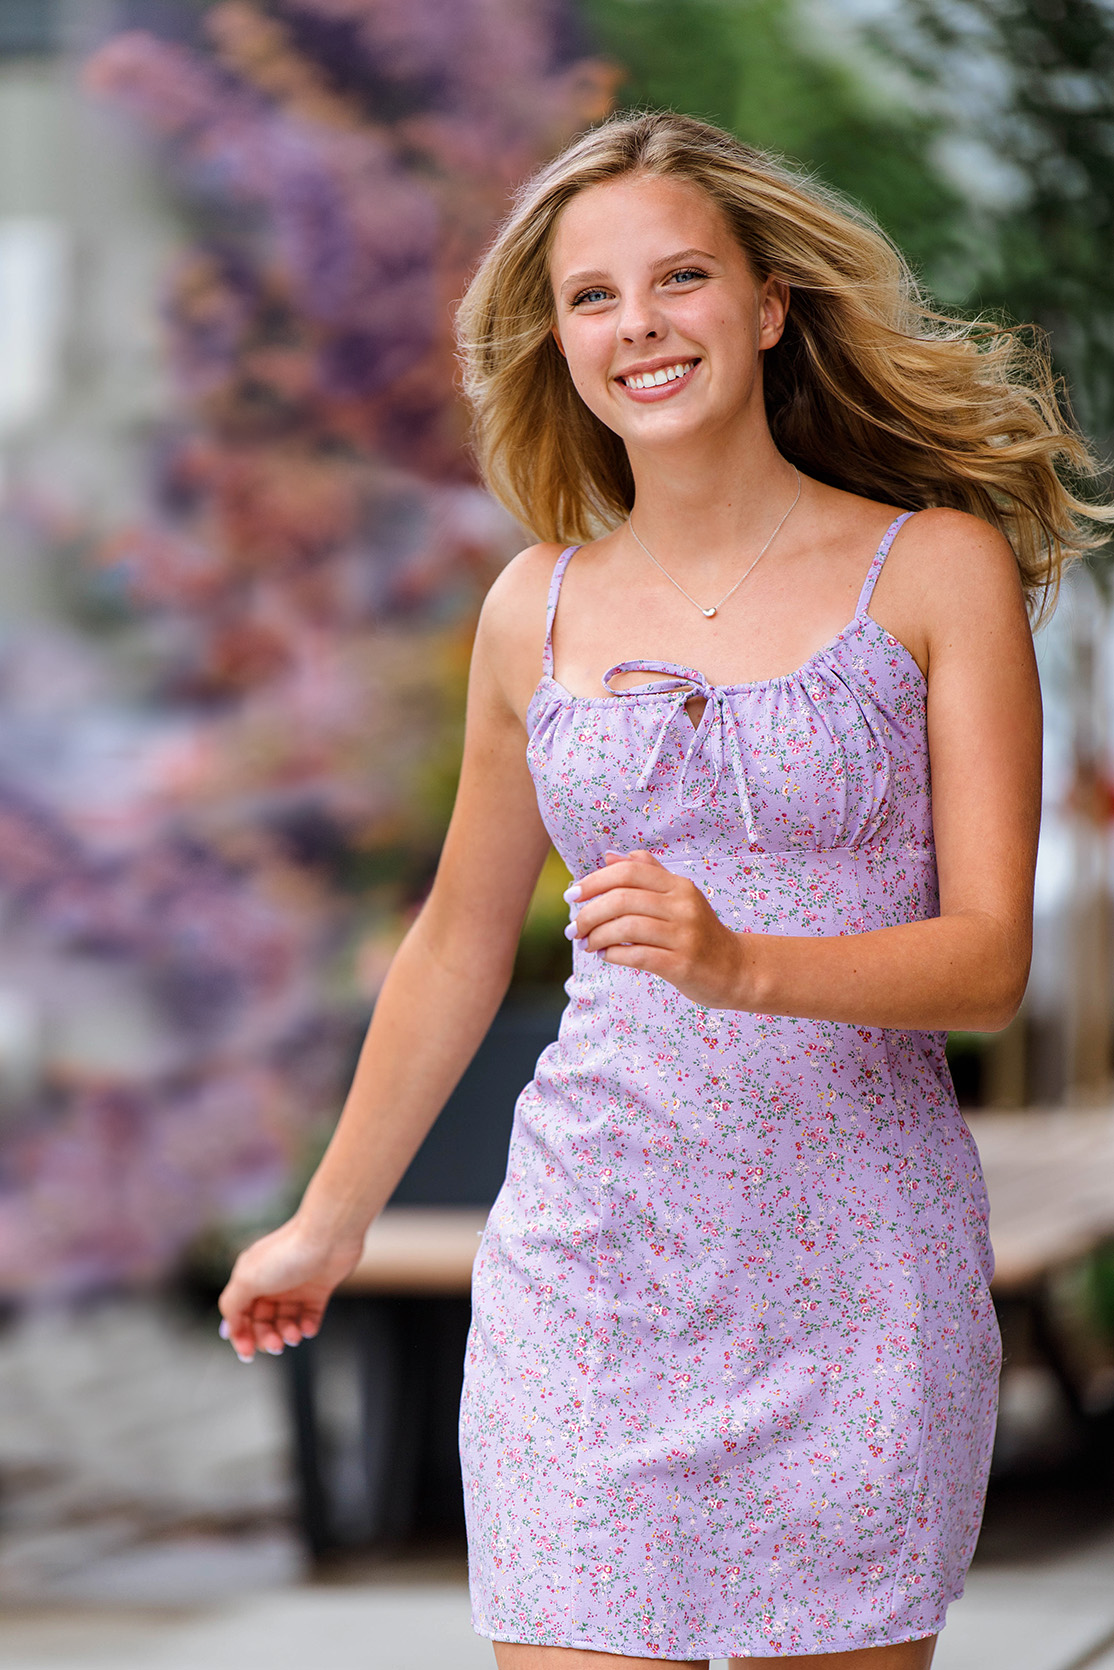 Pretty girl in Bellevue skipping in lavender dress for senior picture_Ryder-5917v.jpg